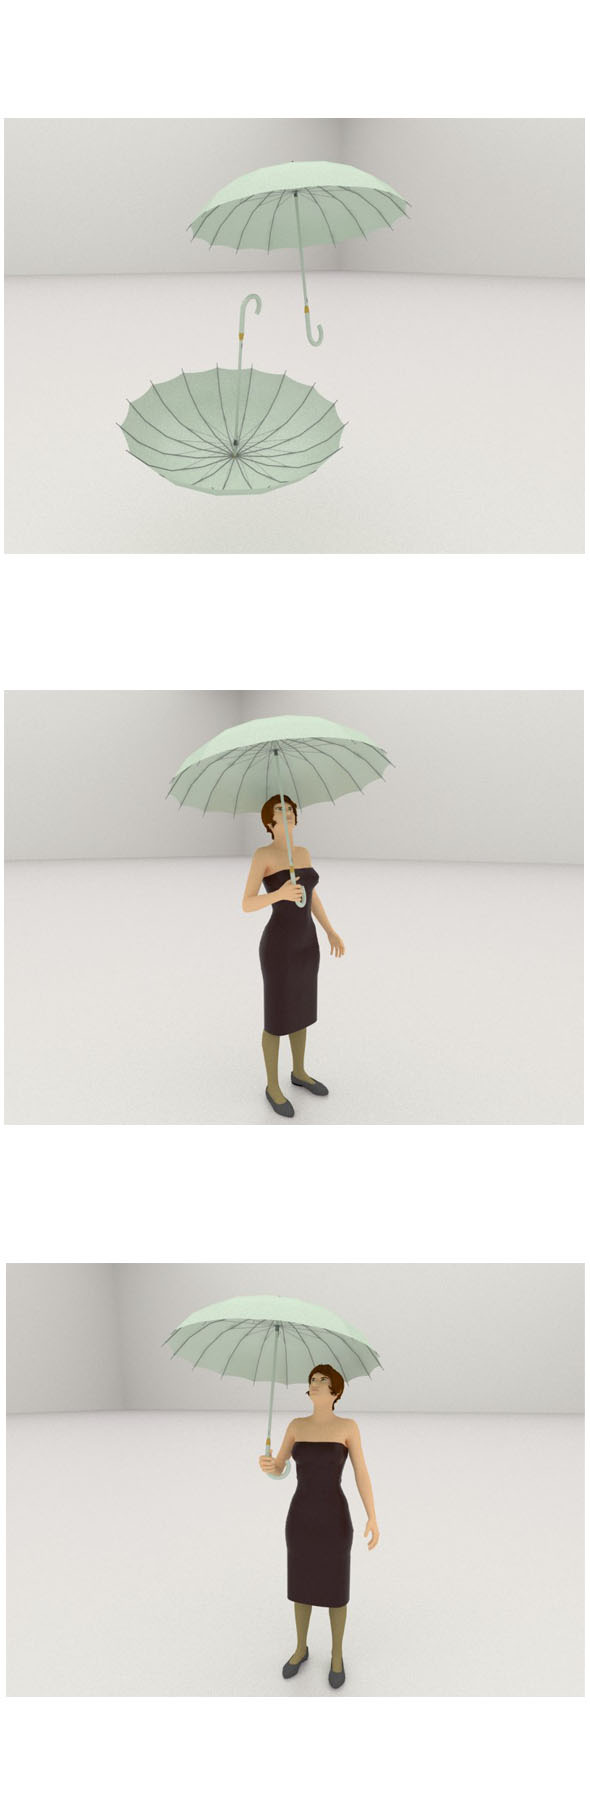 3D woman with umbrella - 3DOcean Item for Sale